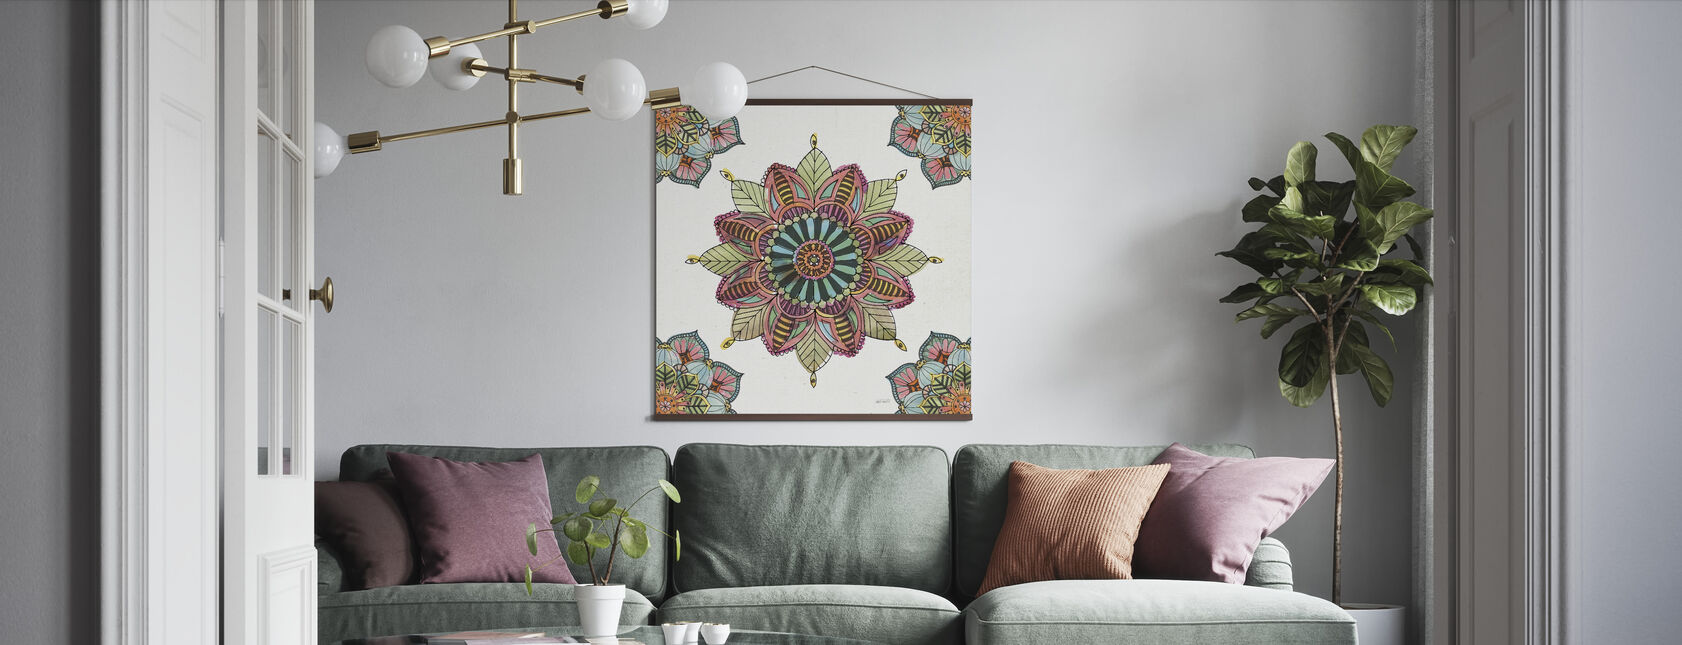 Mandala Morning II - Poster - Living Room